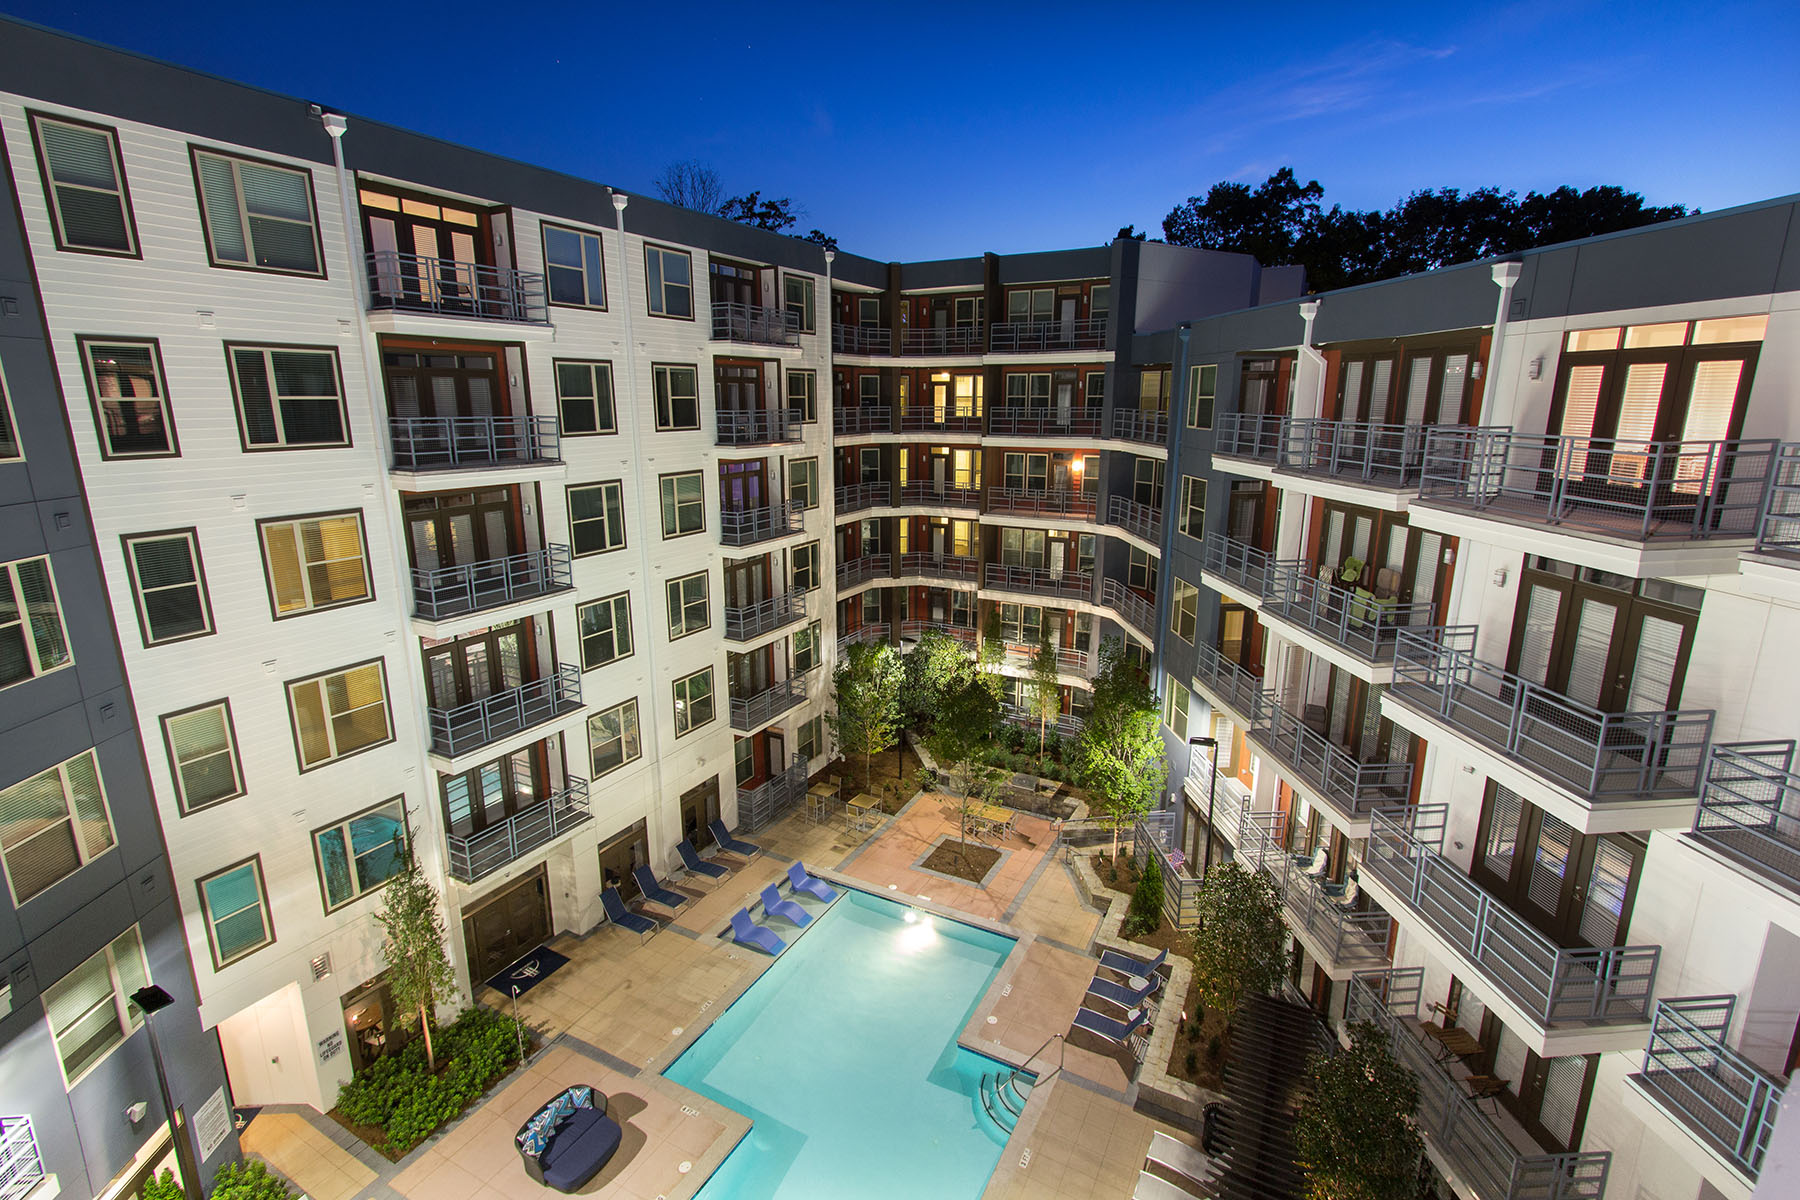 125_Glenridge_Point_Pkwy_Twilight_CourtyardHighAngle1 copy.jpg